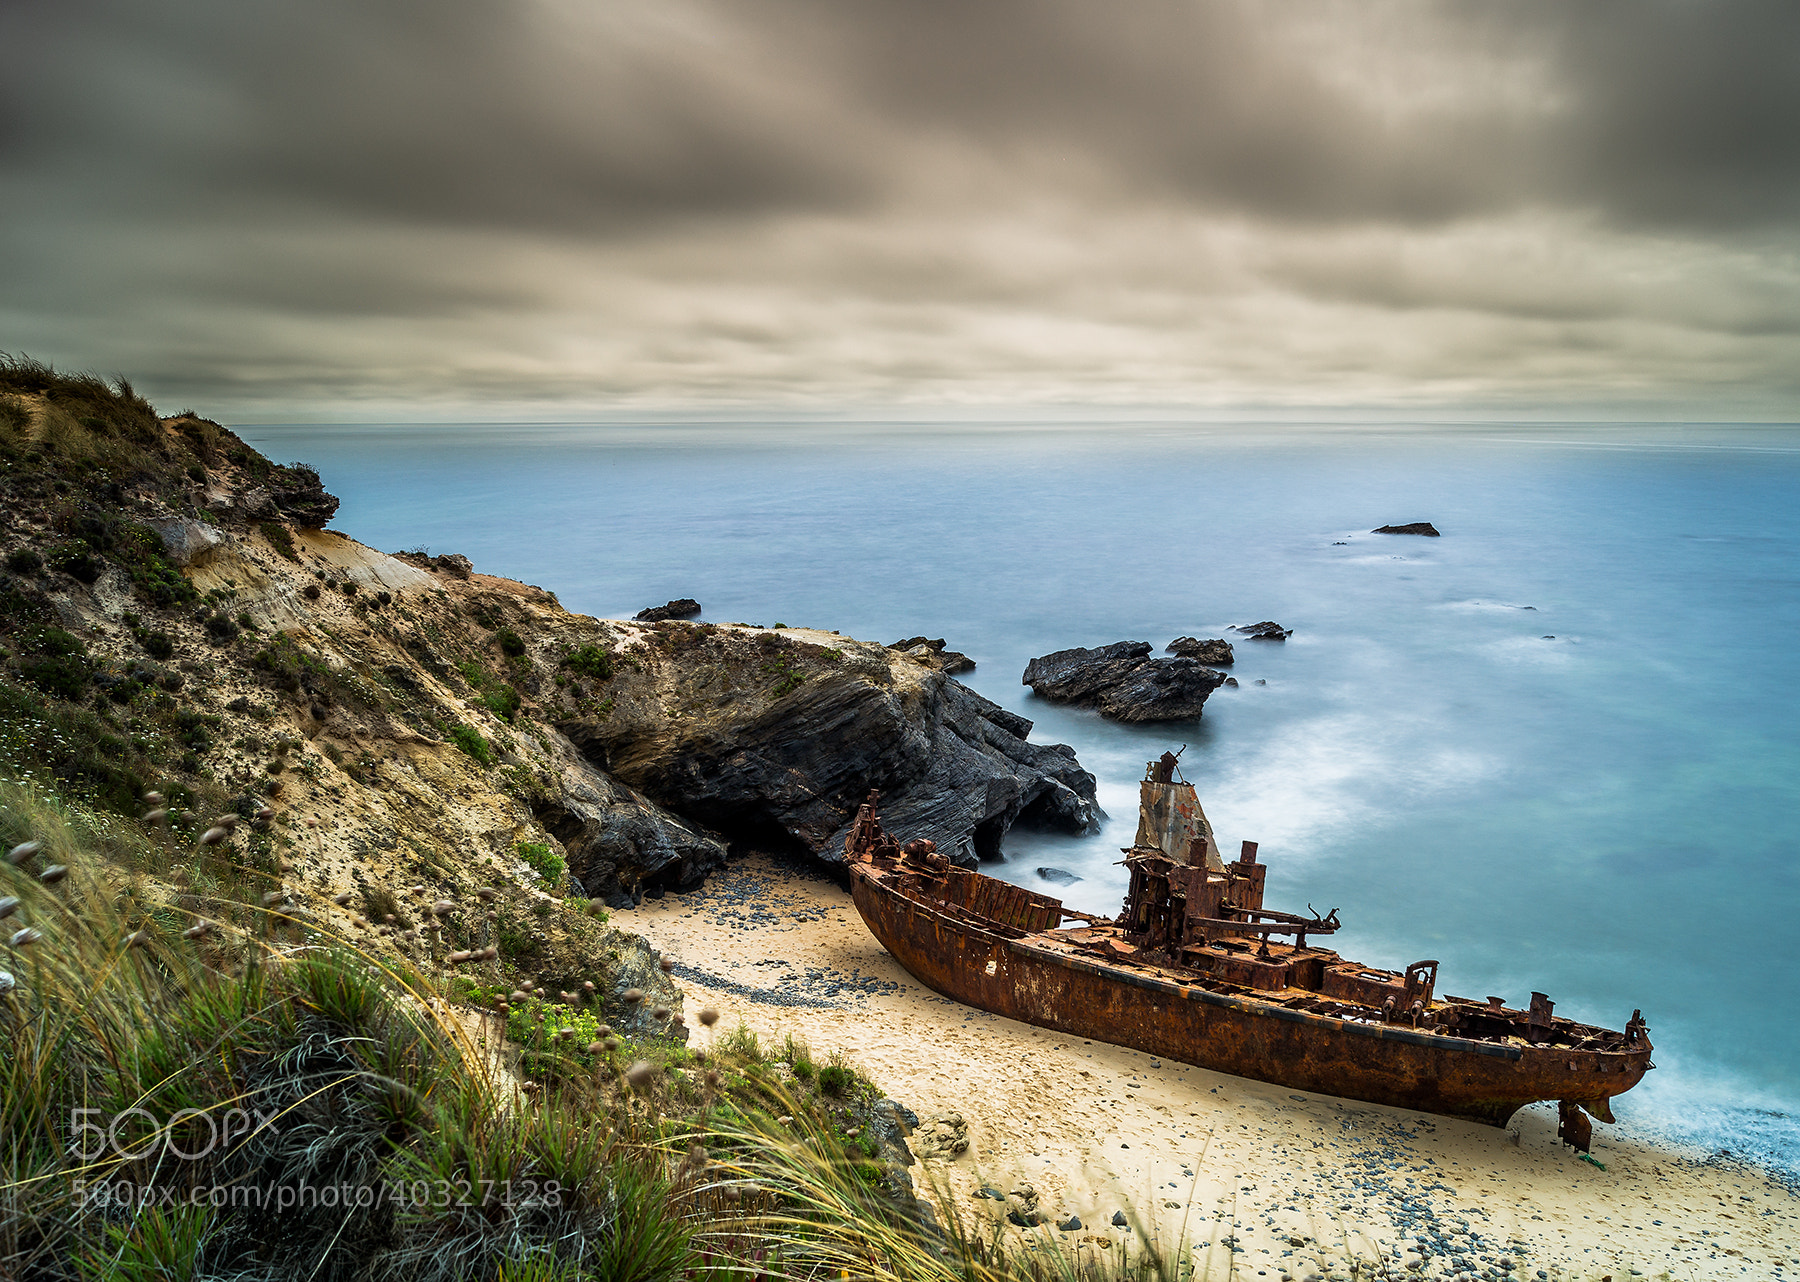 Photograph Pirate boat ? by Emanuel Fernandes on 500px